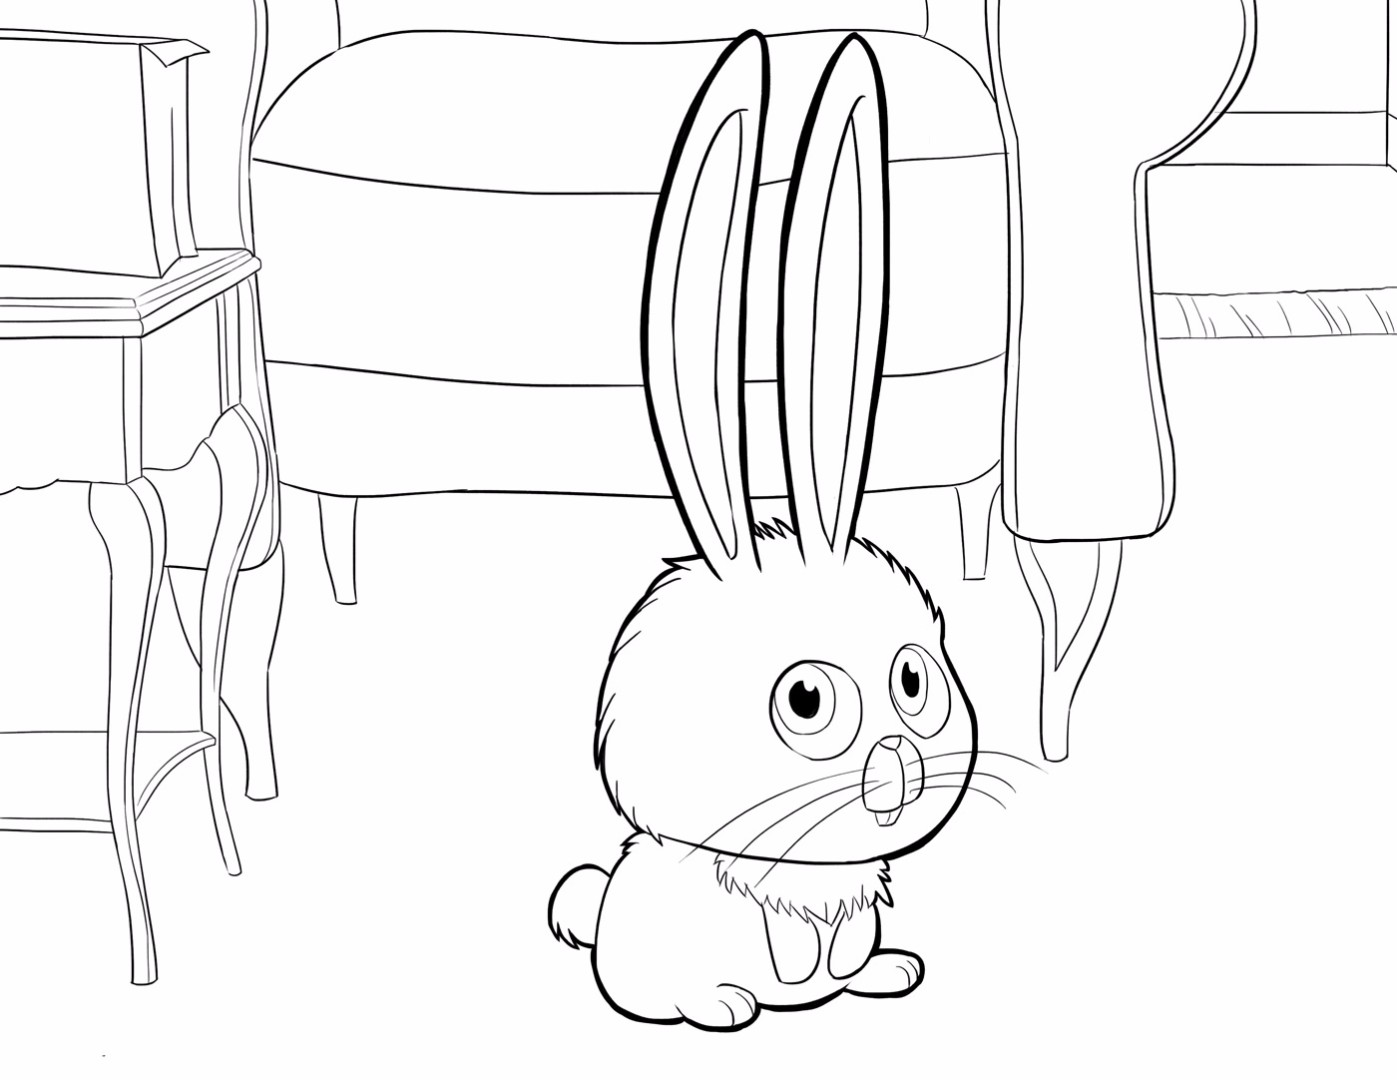 hight resolution of 1397x1080 the secret life of pets coloring pages